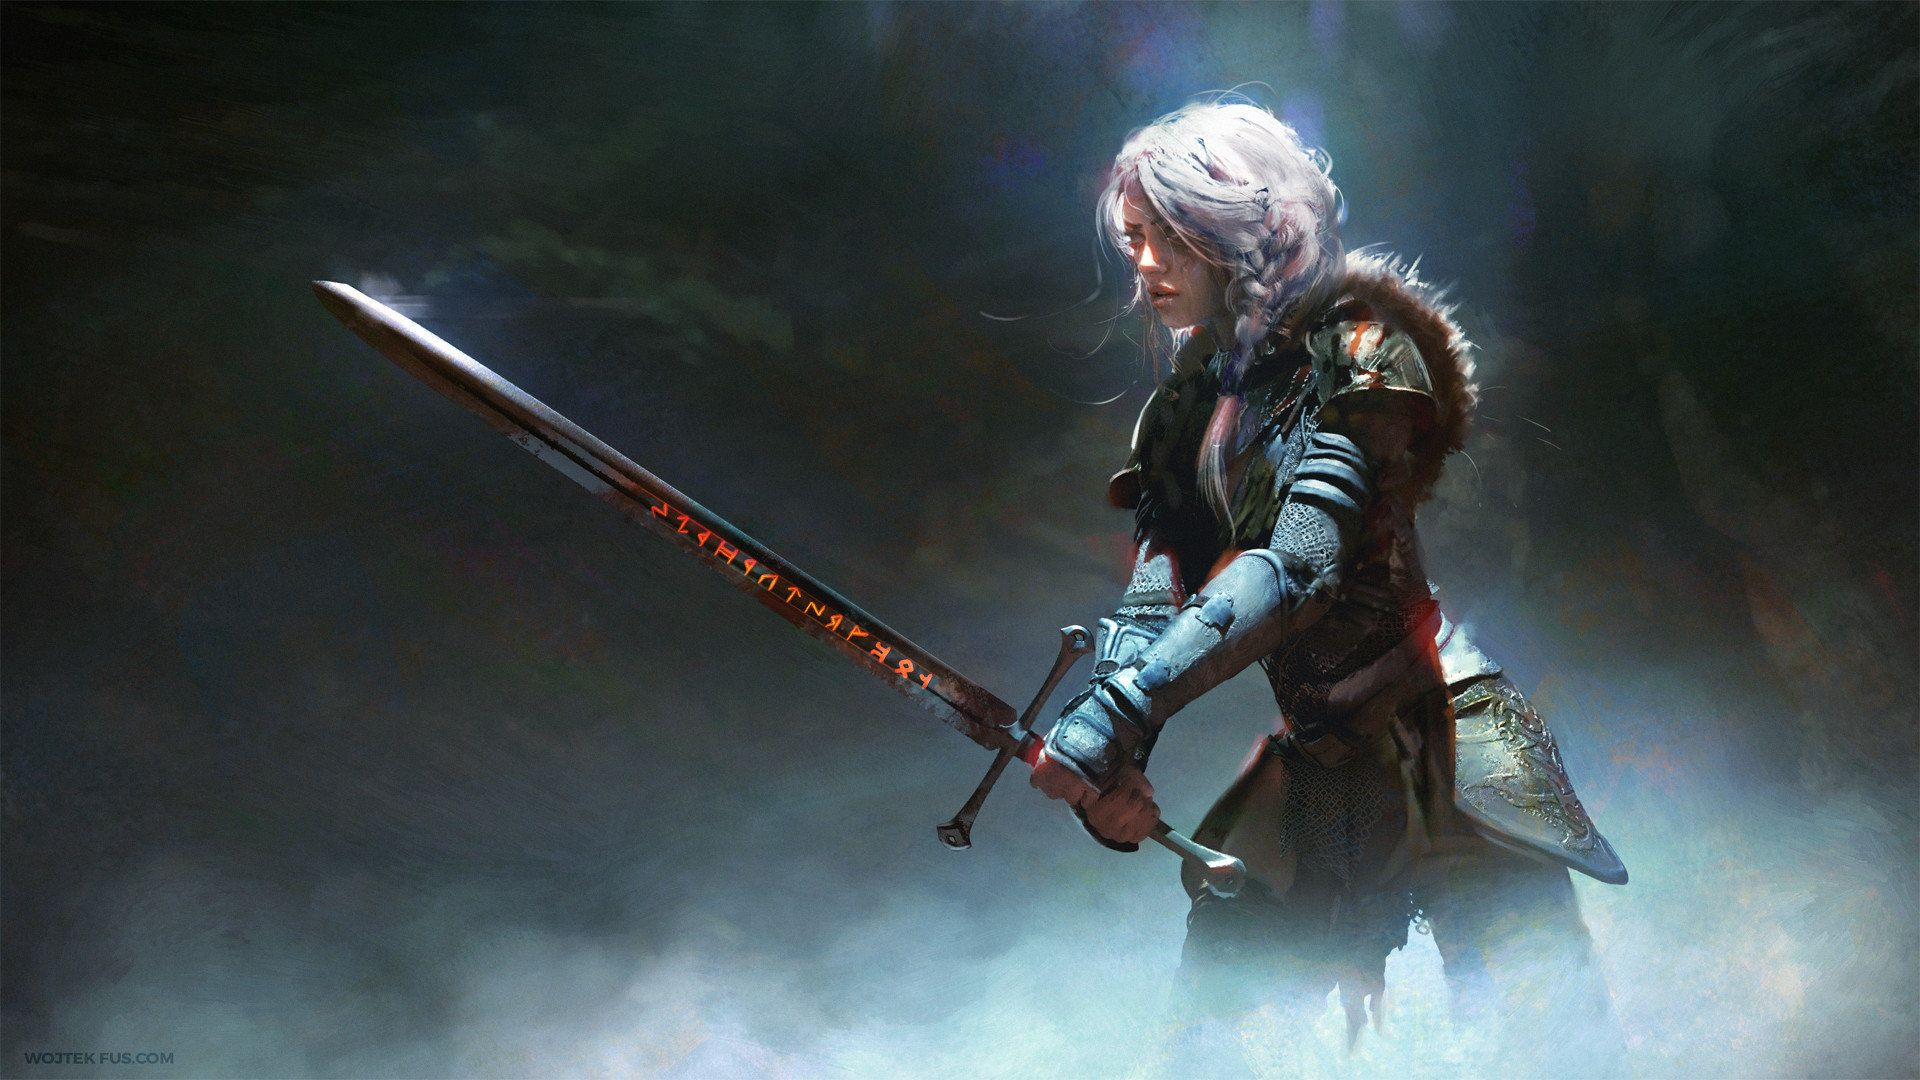 The Witcher Ciri, Nice Wallpaper